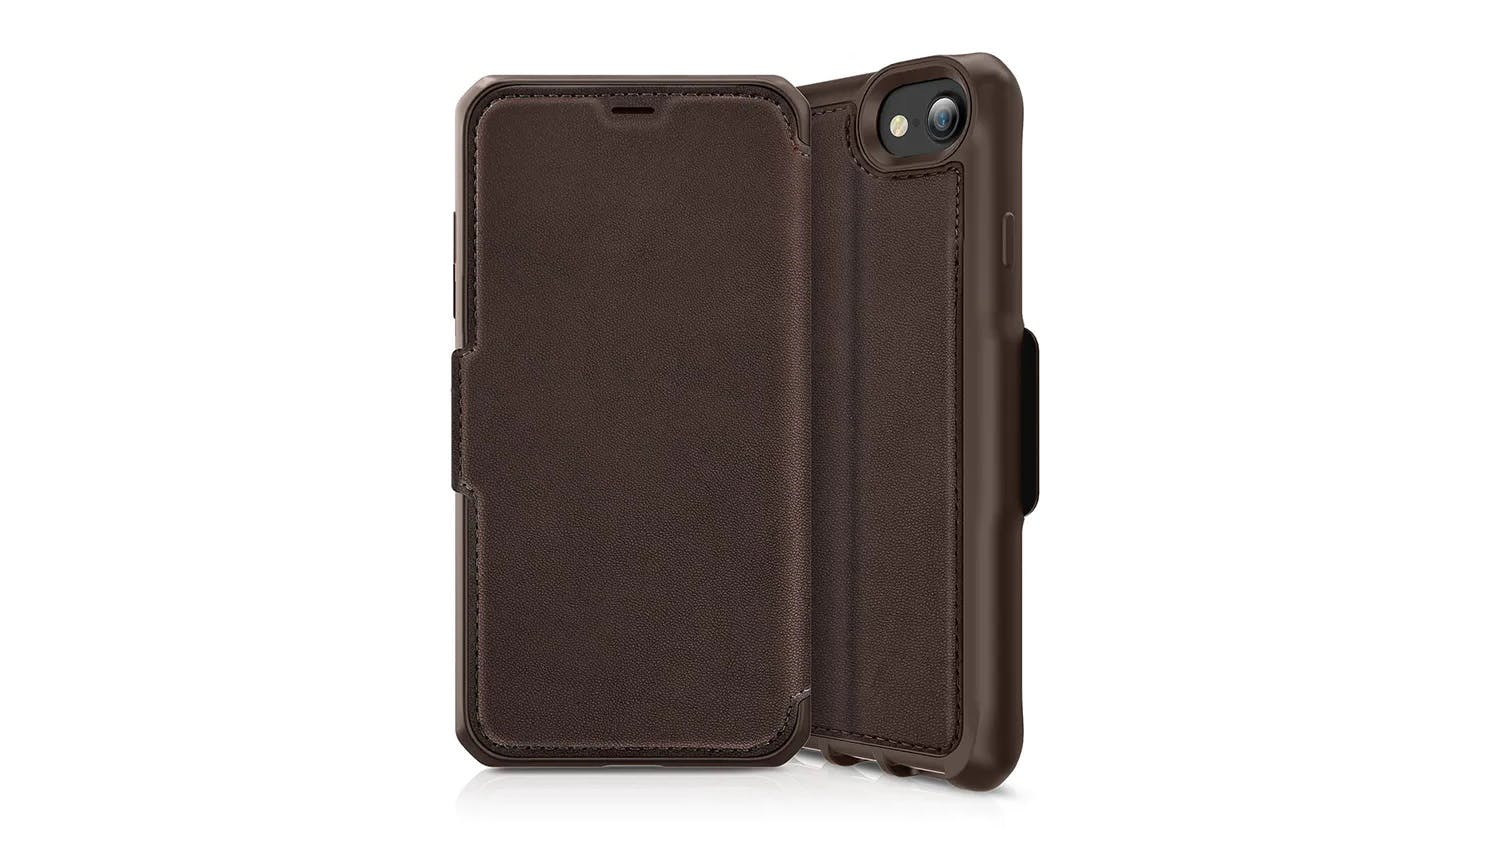 ITSKINS Hybrid Folio Case for iPhone SE (2nd Gen), 7/8 - Brown